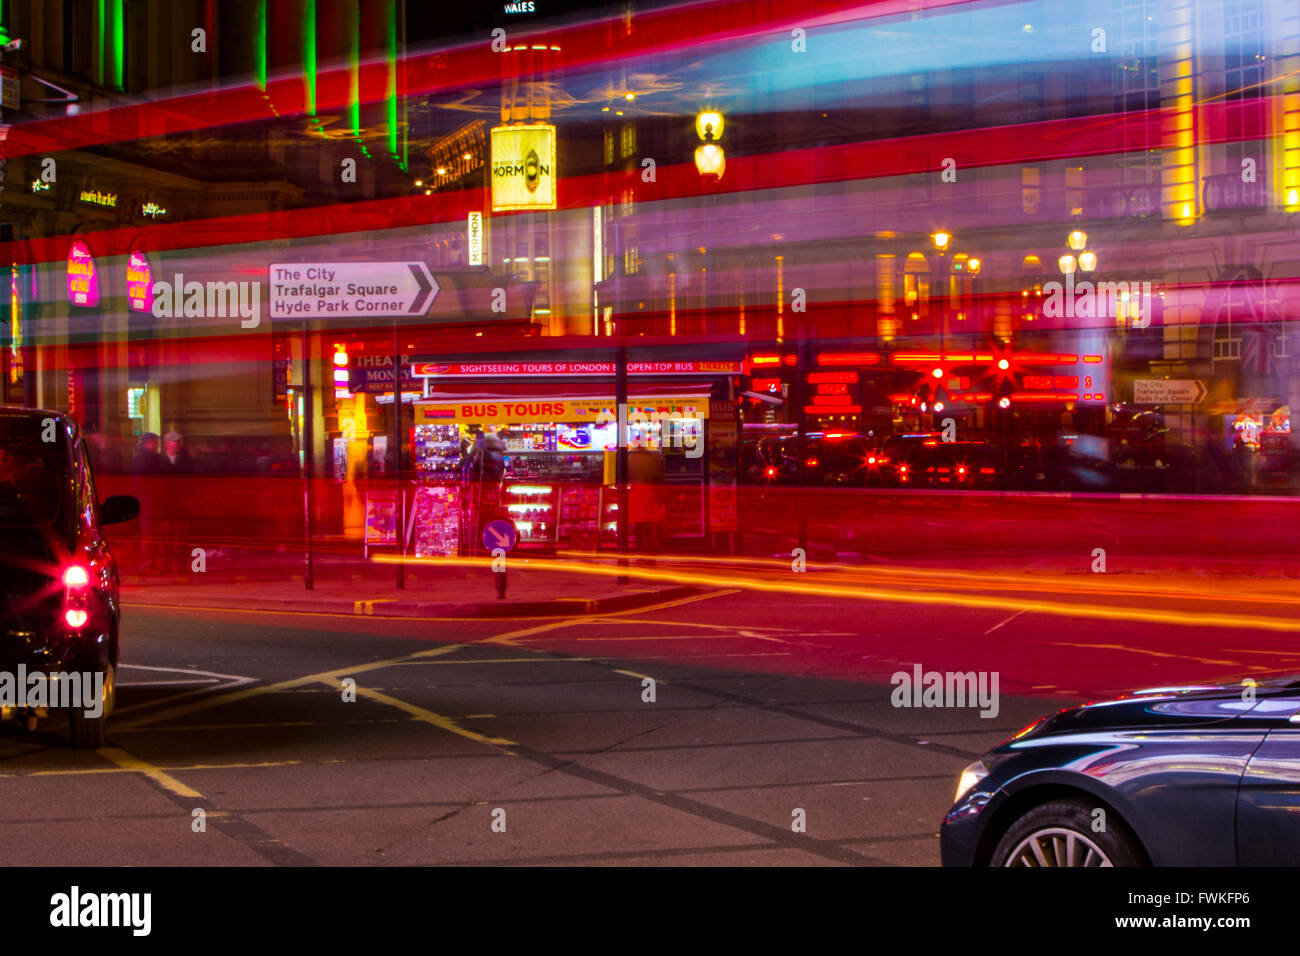 London Bus light trails night time Piccadilly circus black Cab taxi long exposure - Stock Image